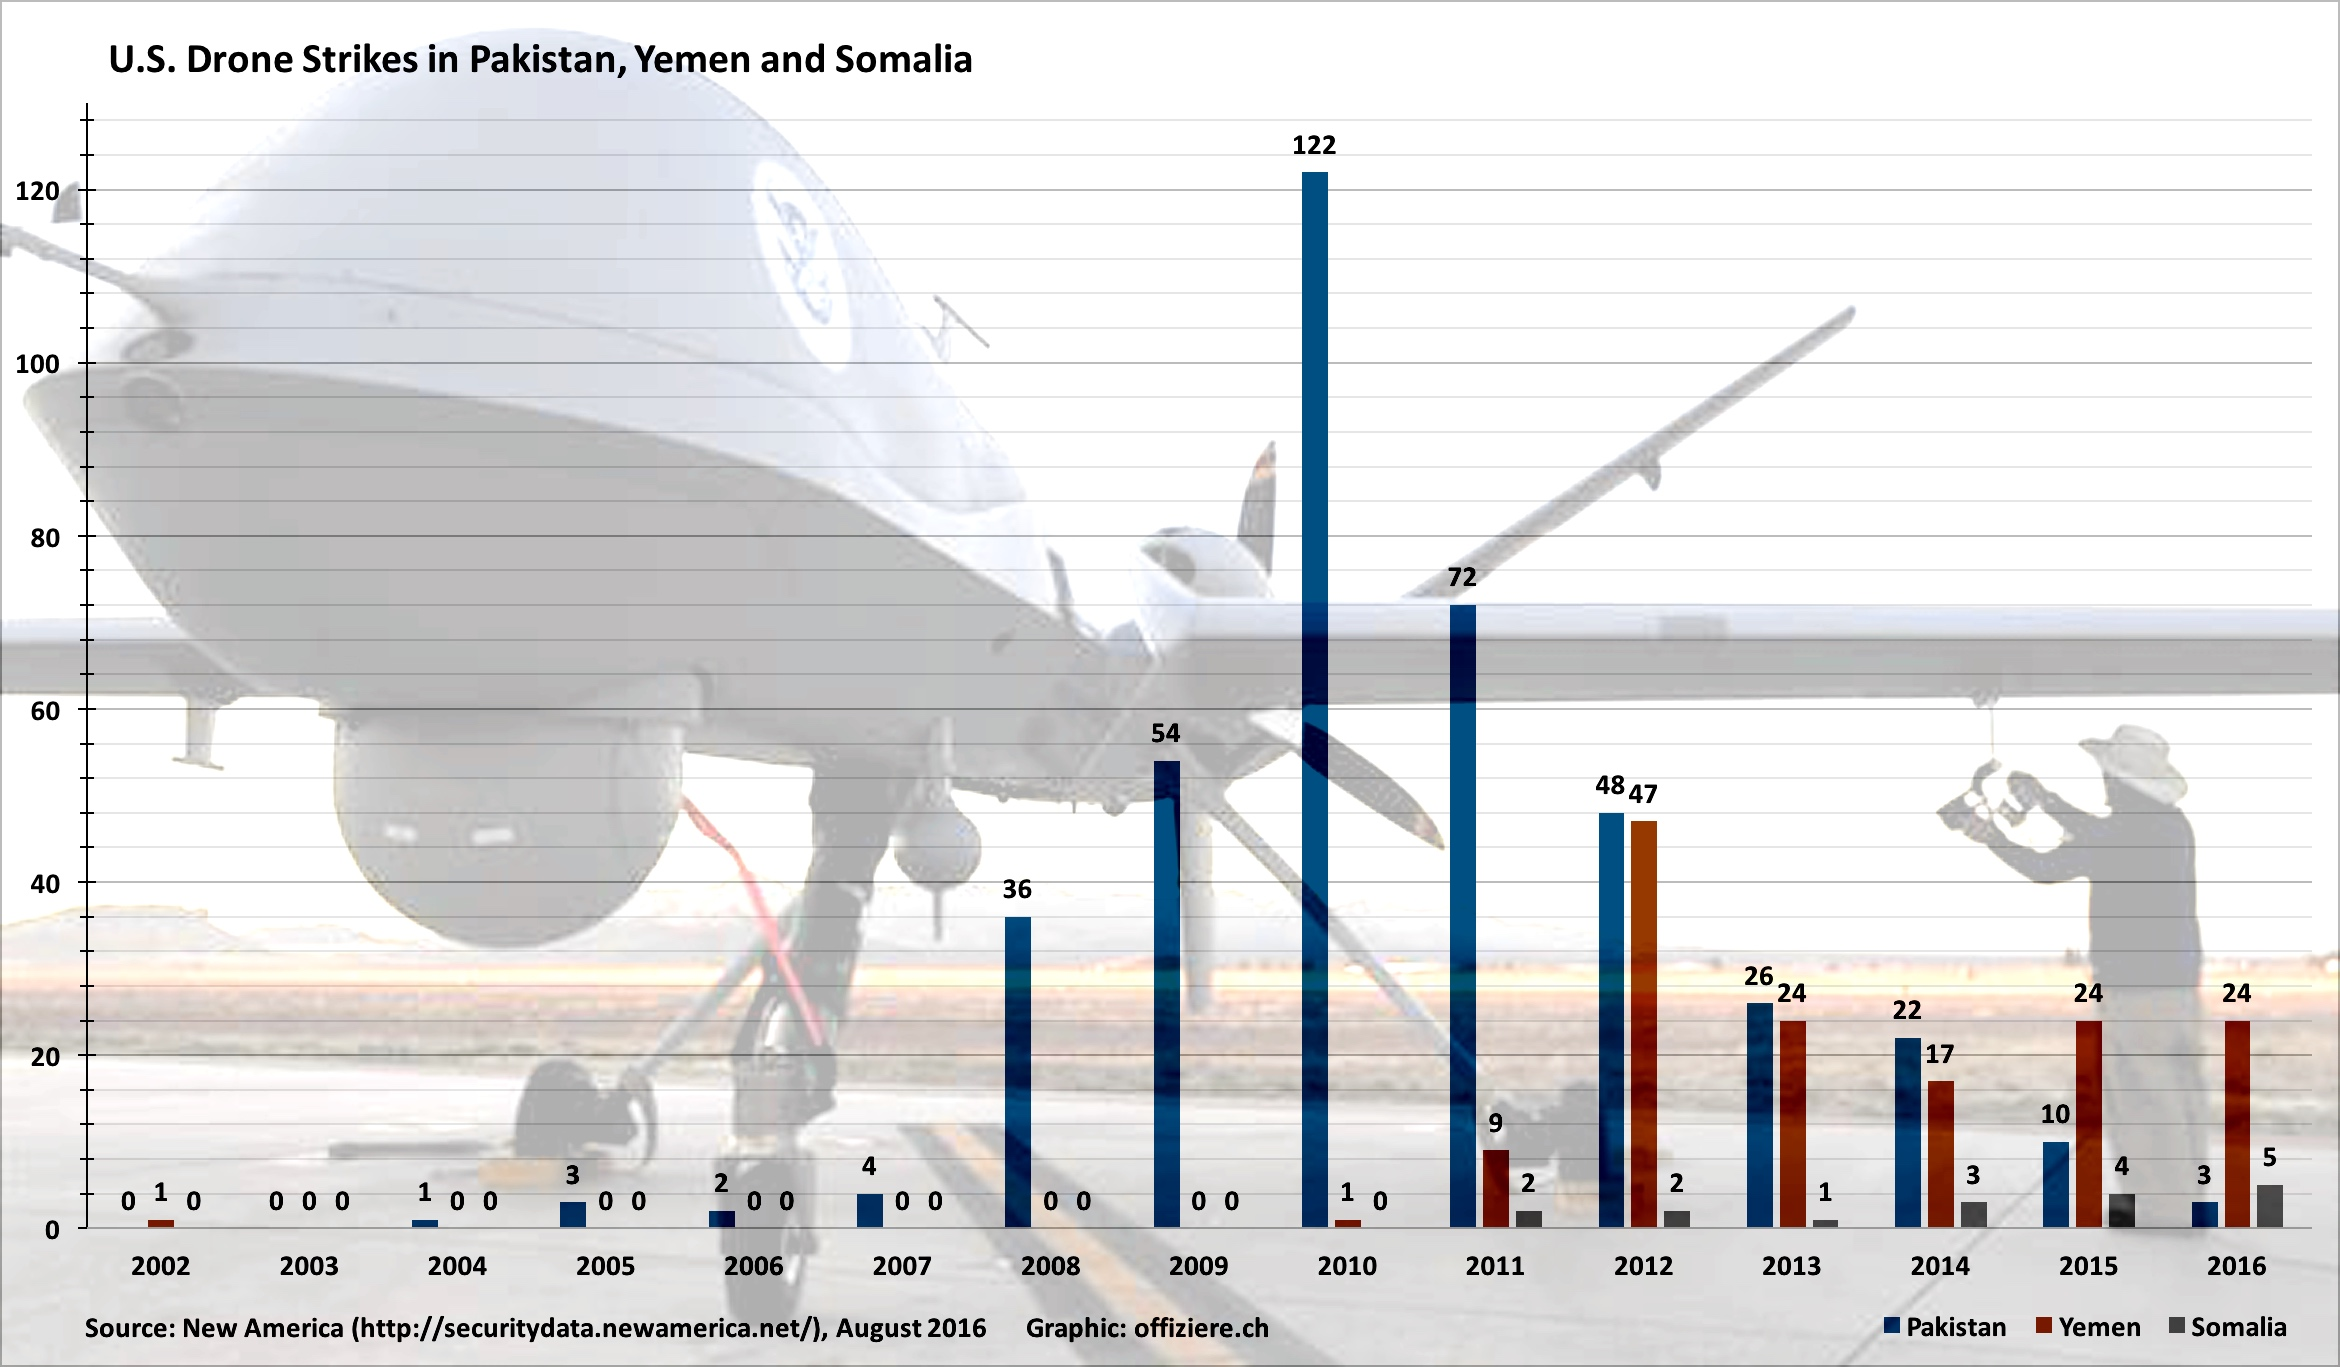 Drone-Strikes-in-Pakistan-Yemen-Somalia.jpg